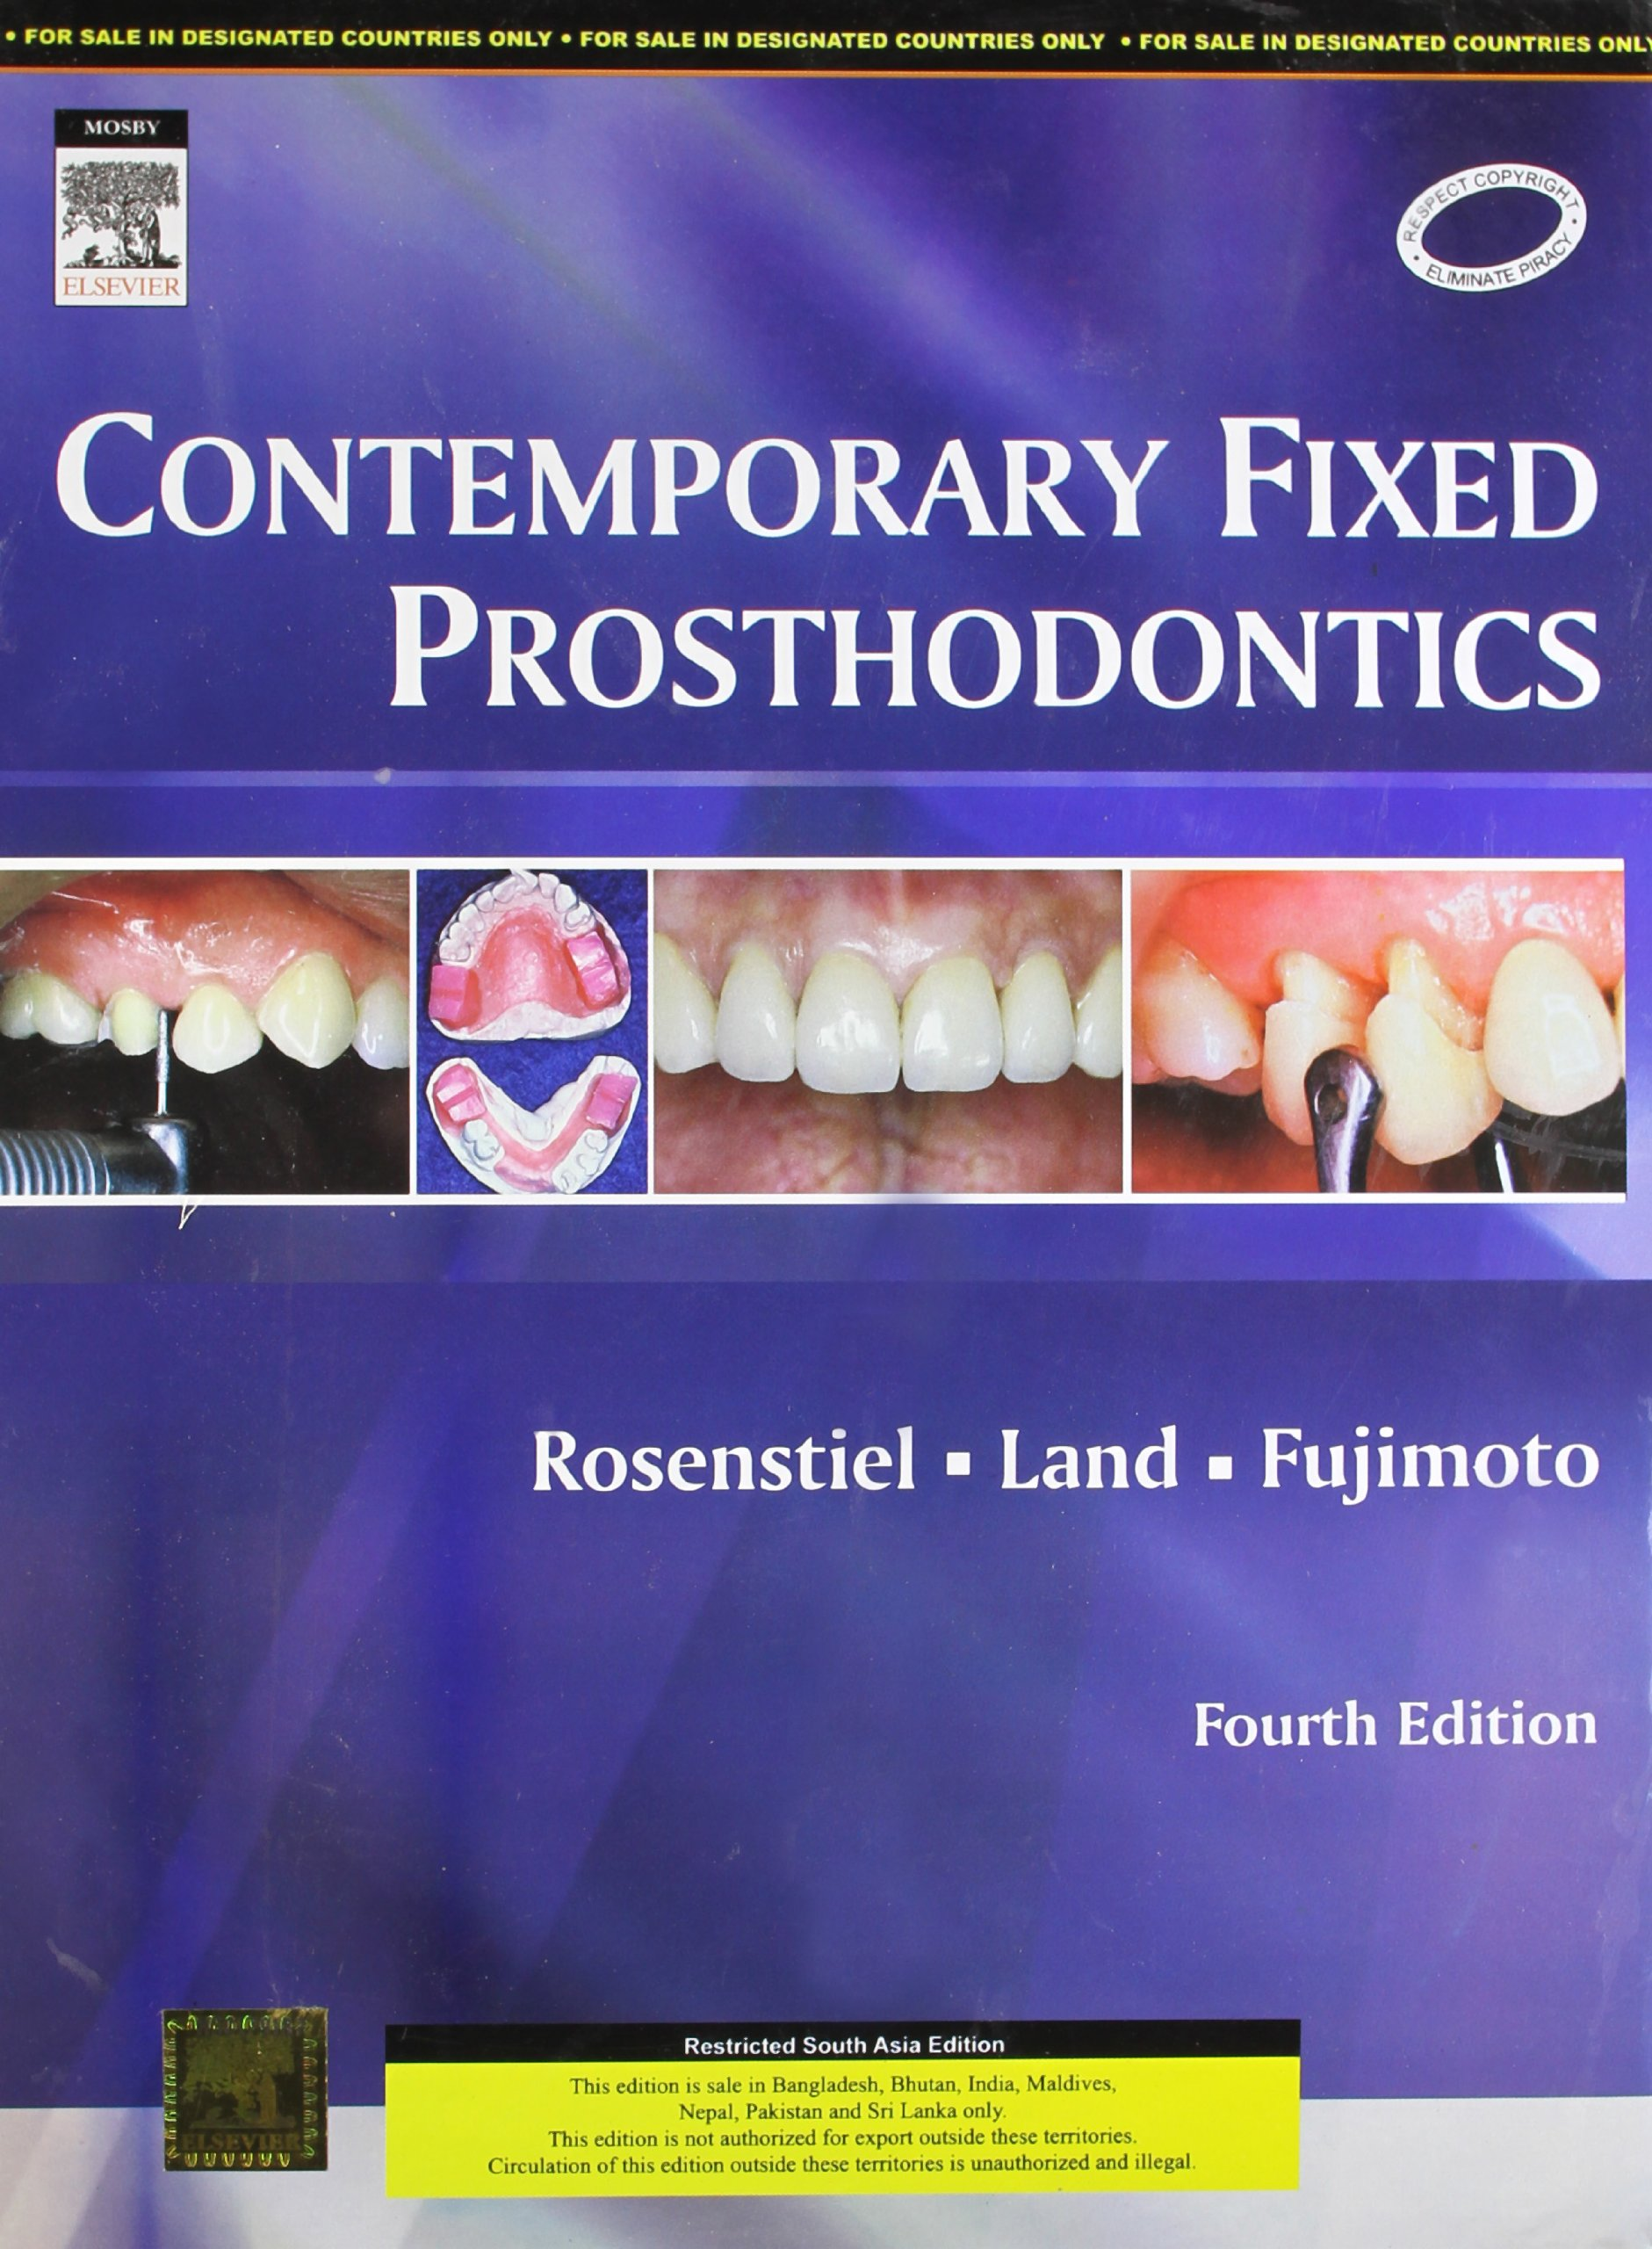 Rosenstiel contemporary fixed prosthodontics 4th edition epub download this fandeluxe Choice Image